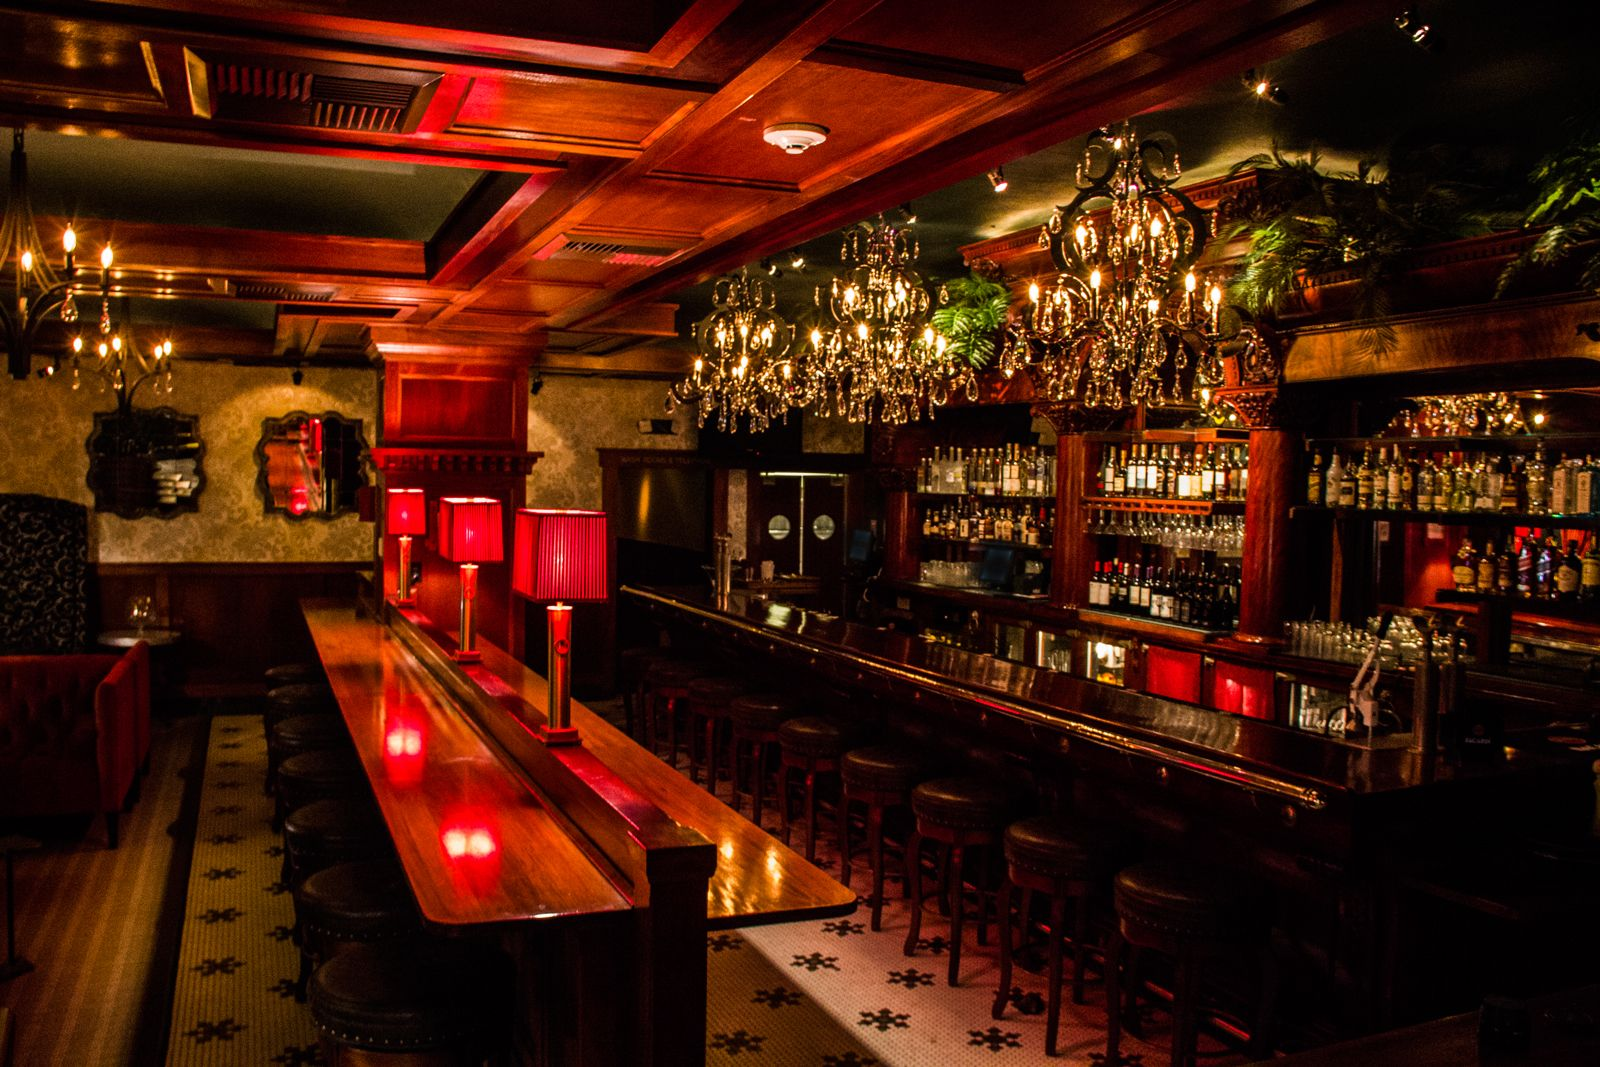 Home White Horse Lounge Pasadena Restaurants Cool Places To Visit